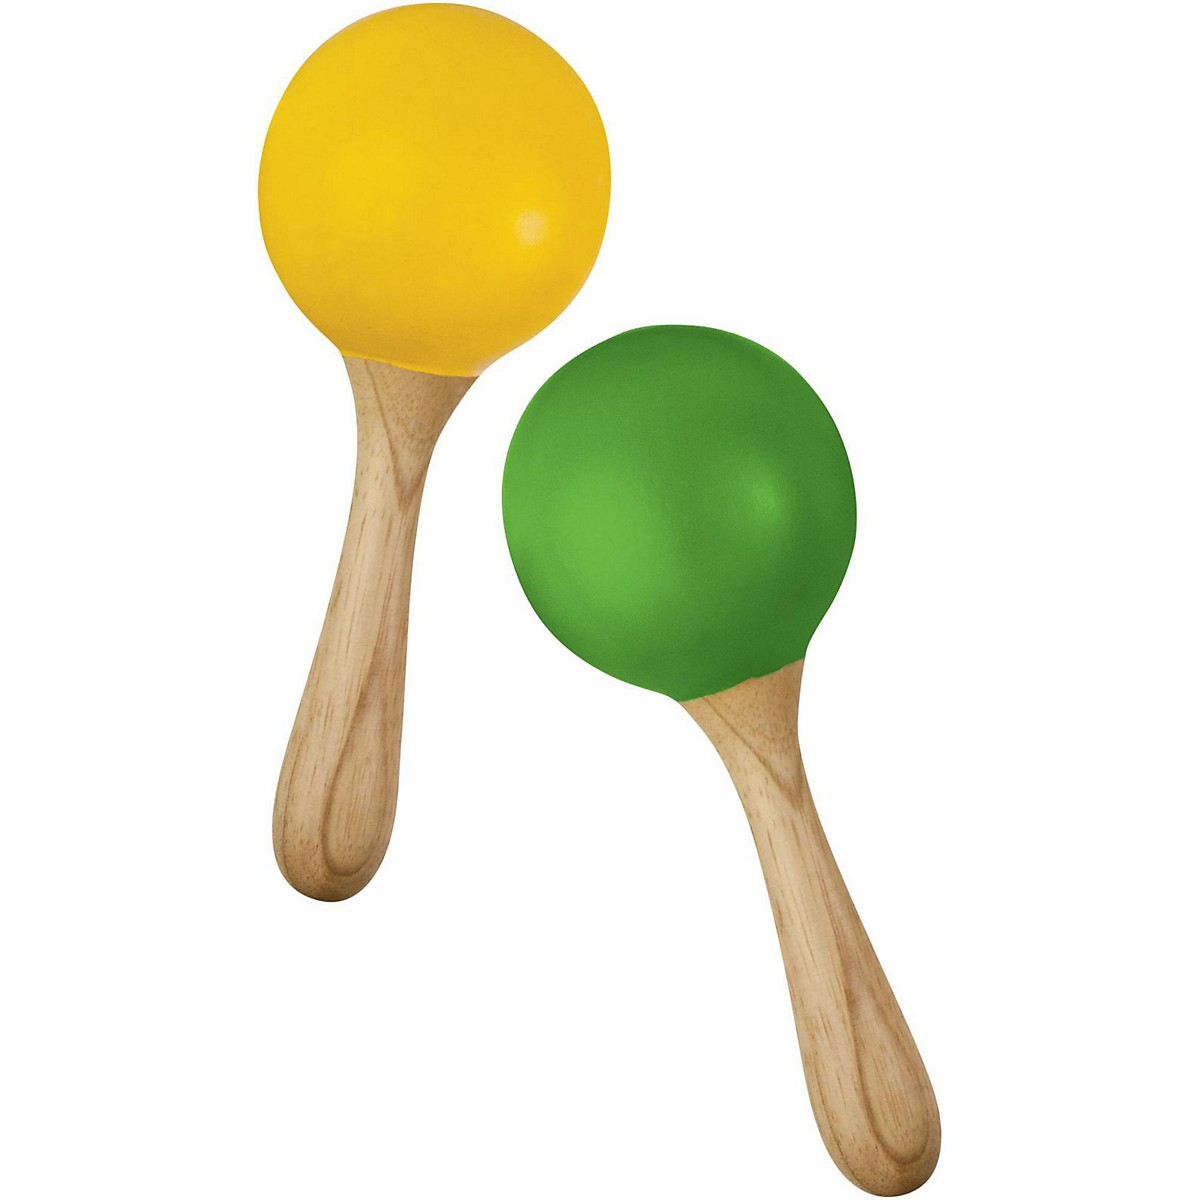 Green Tones Egg Shaped Maracas